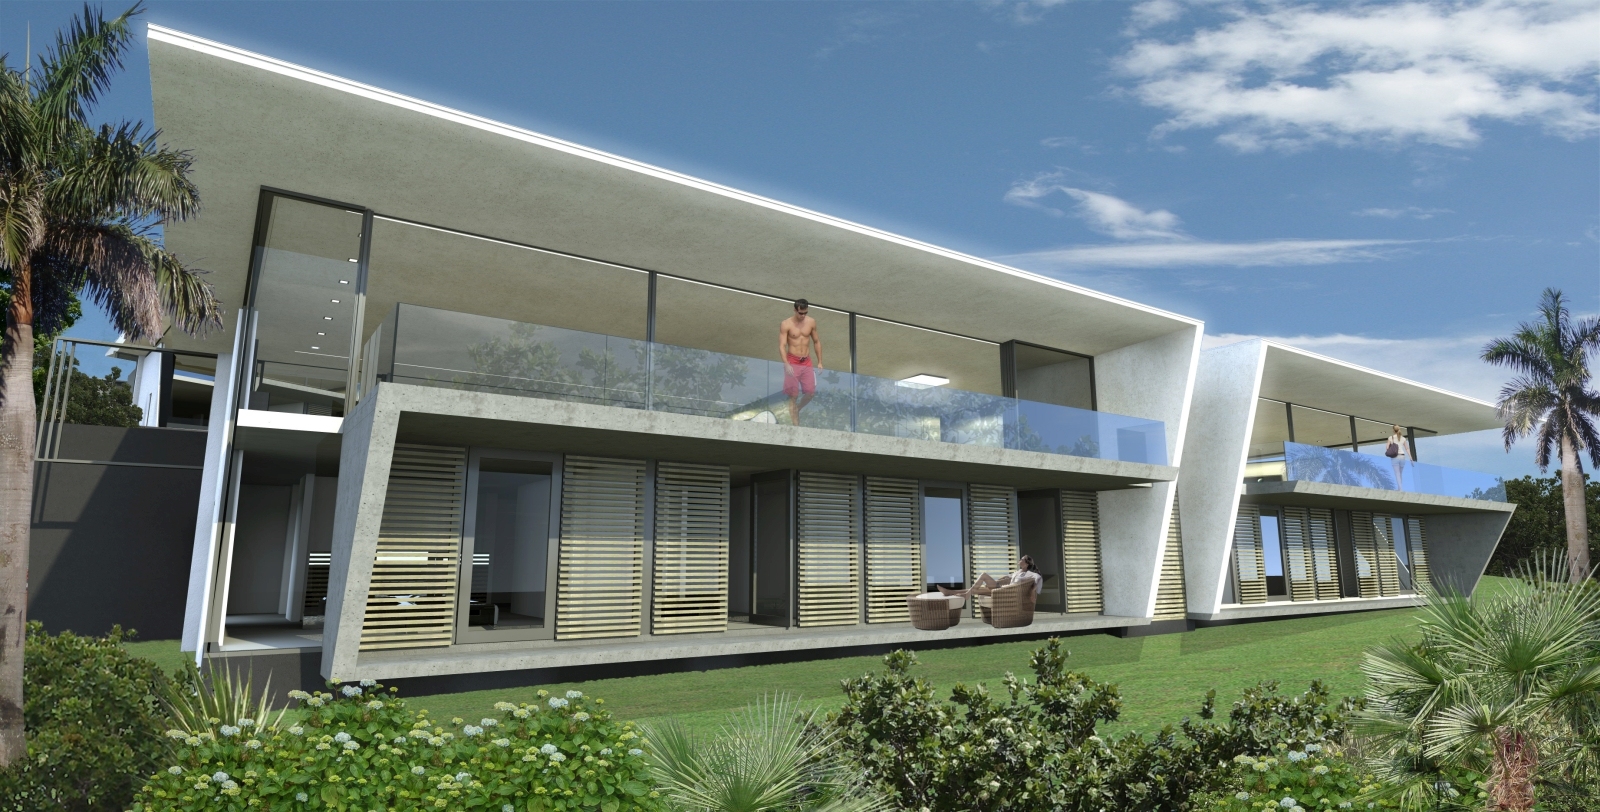 Exclusive luxury development launched in Umdloti - SA Property Insider